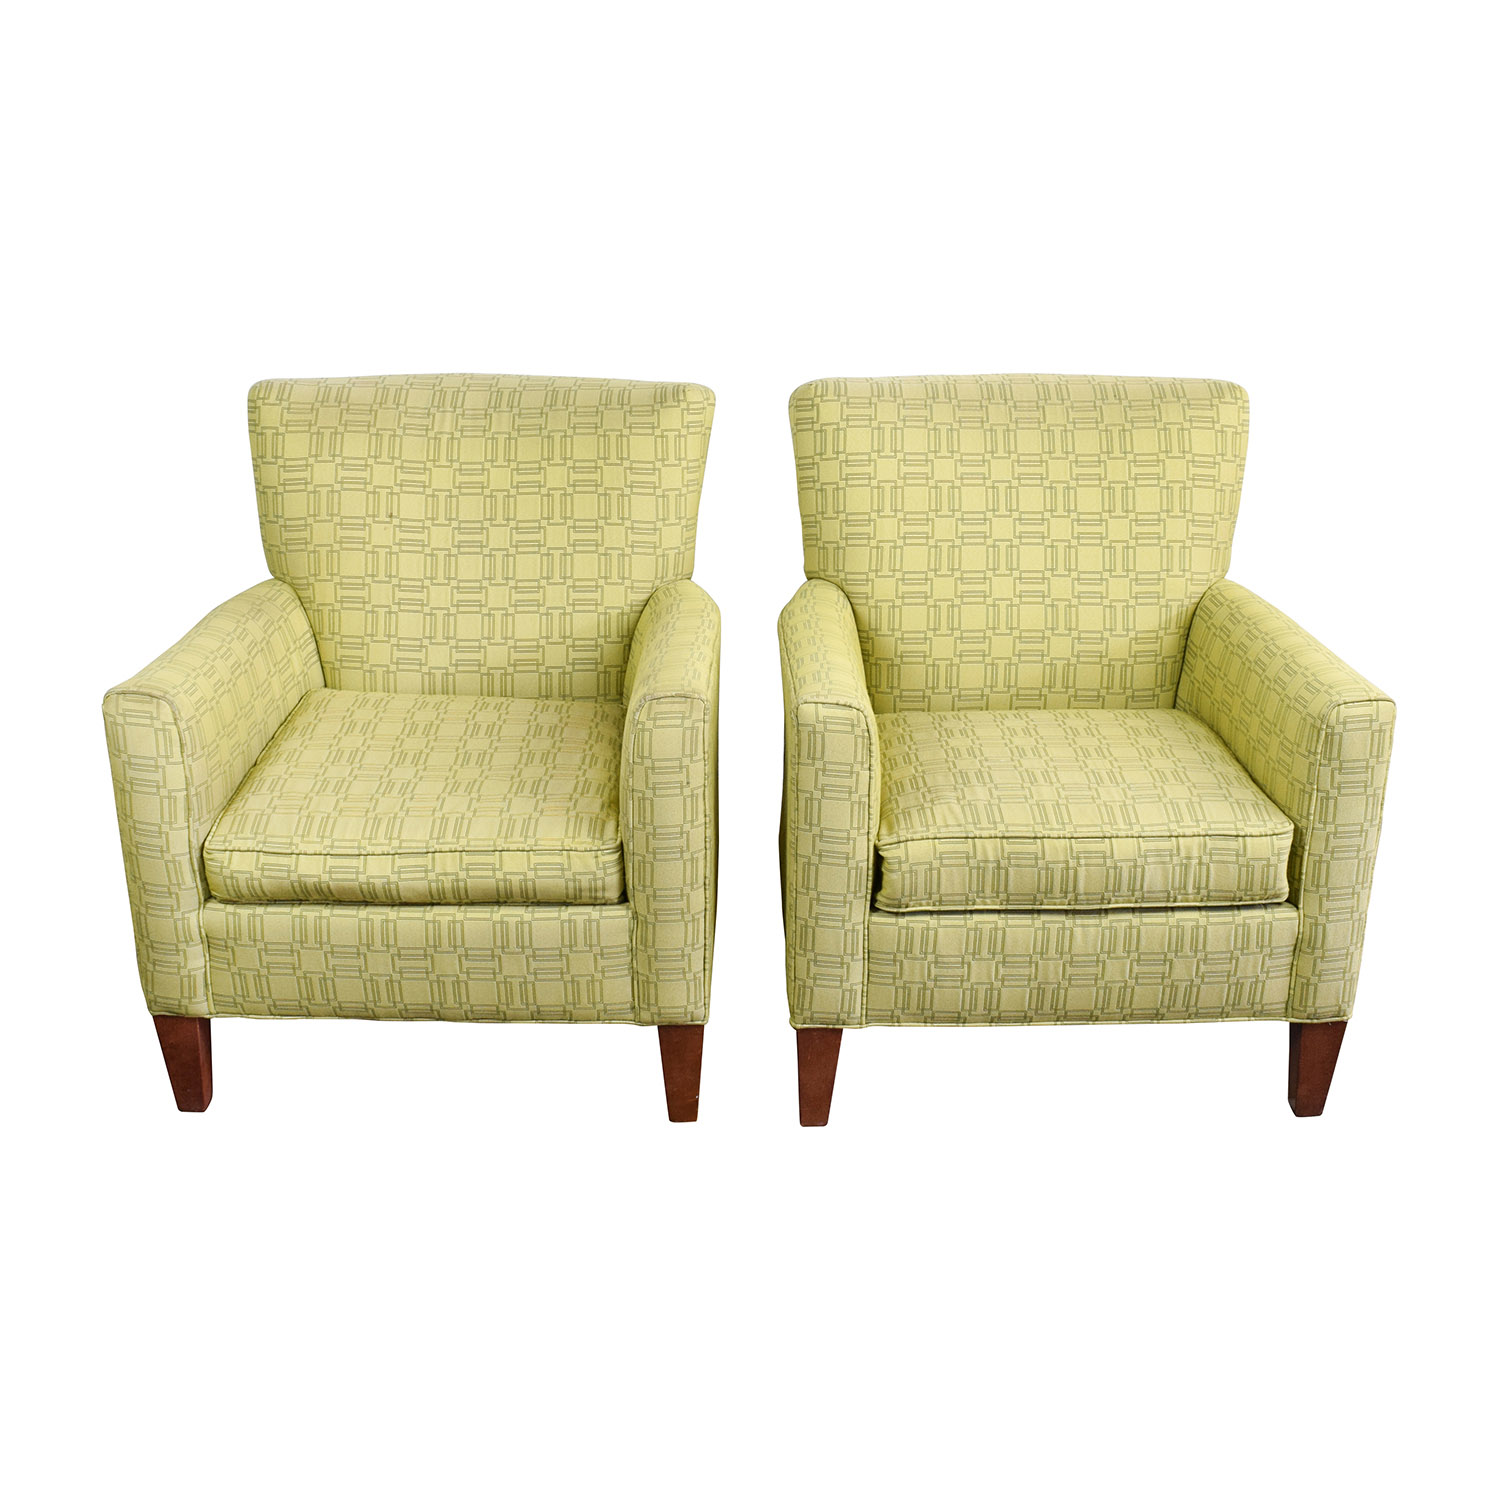 Ethan Allen Ethan Allen Green Upholstered Accent Chairs second hand